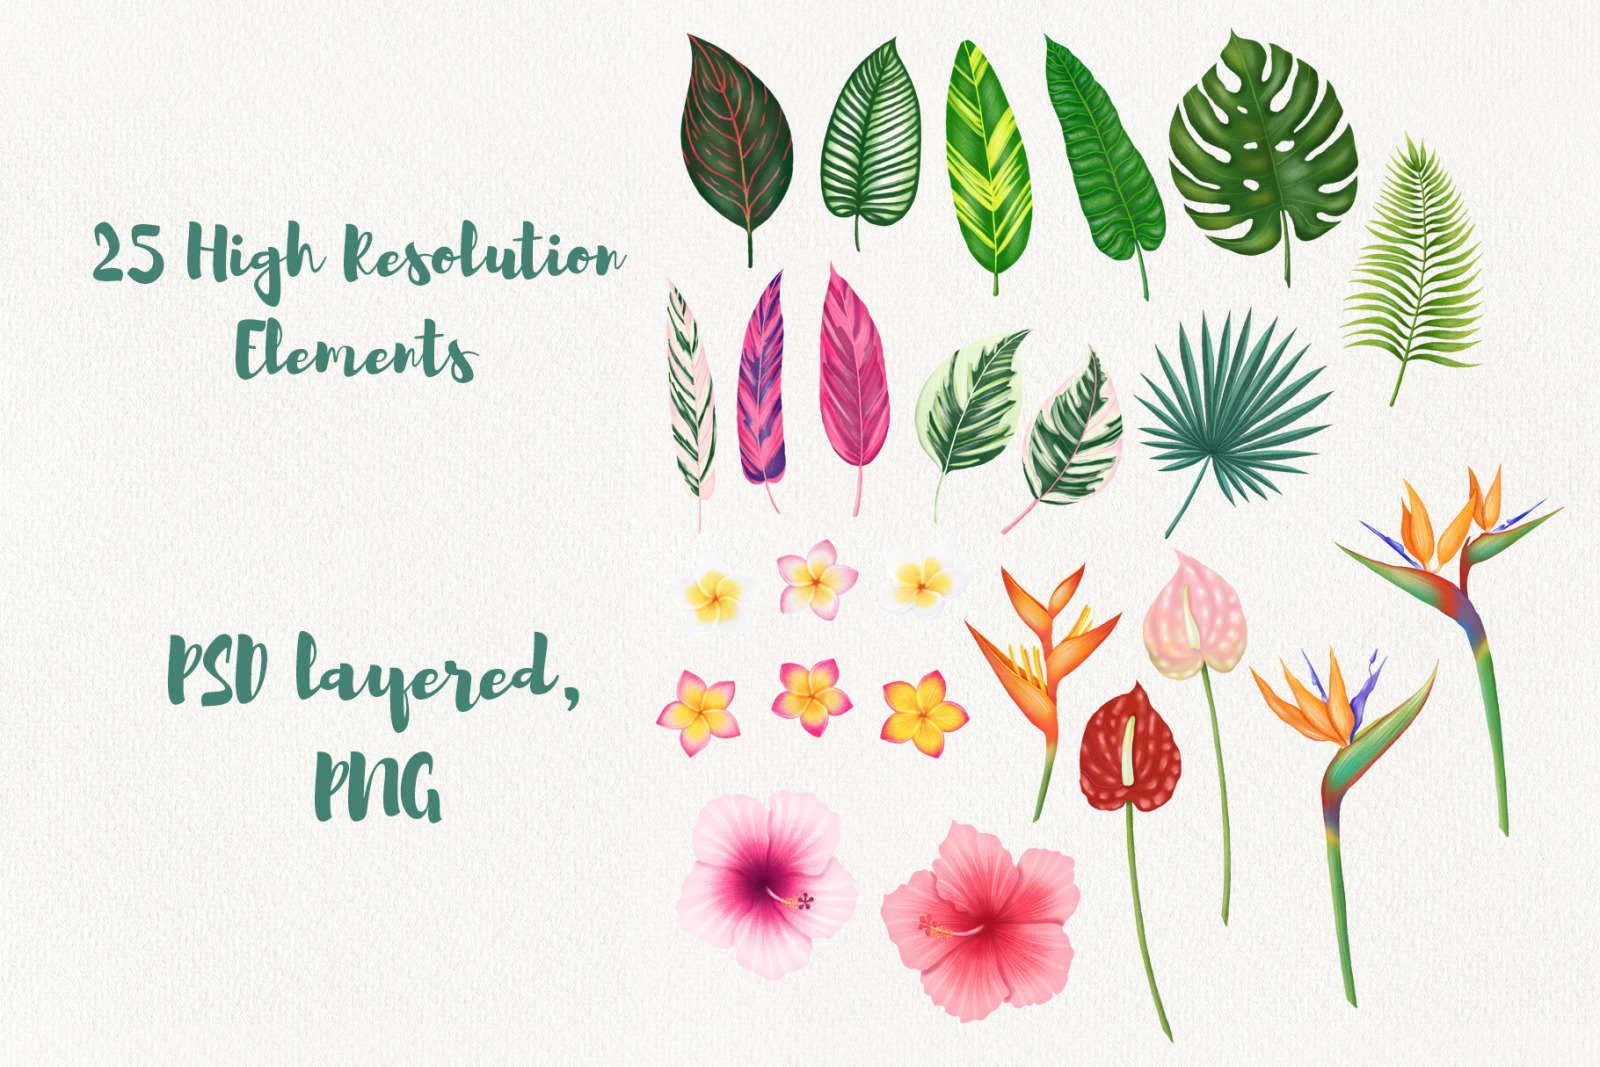 Tropical Leaves And Flowers Clipart In Graphics On Yellow Images Creative Store Free download 39 best quality tropical flower clipart at getdrawings. tropical leaves and flowers clipart in